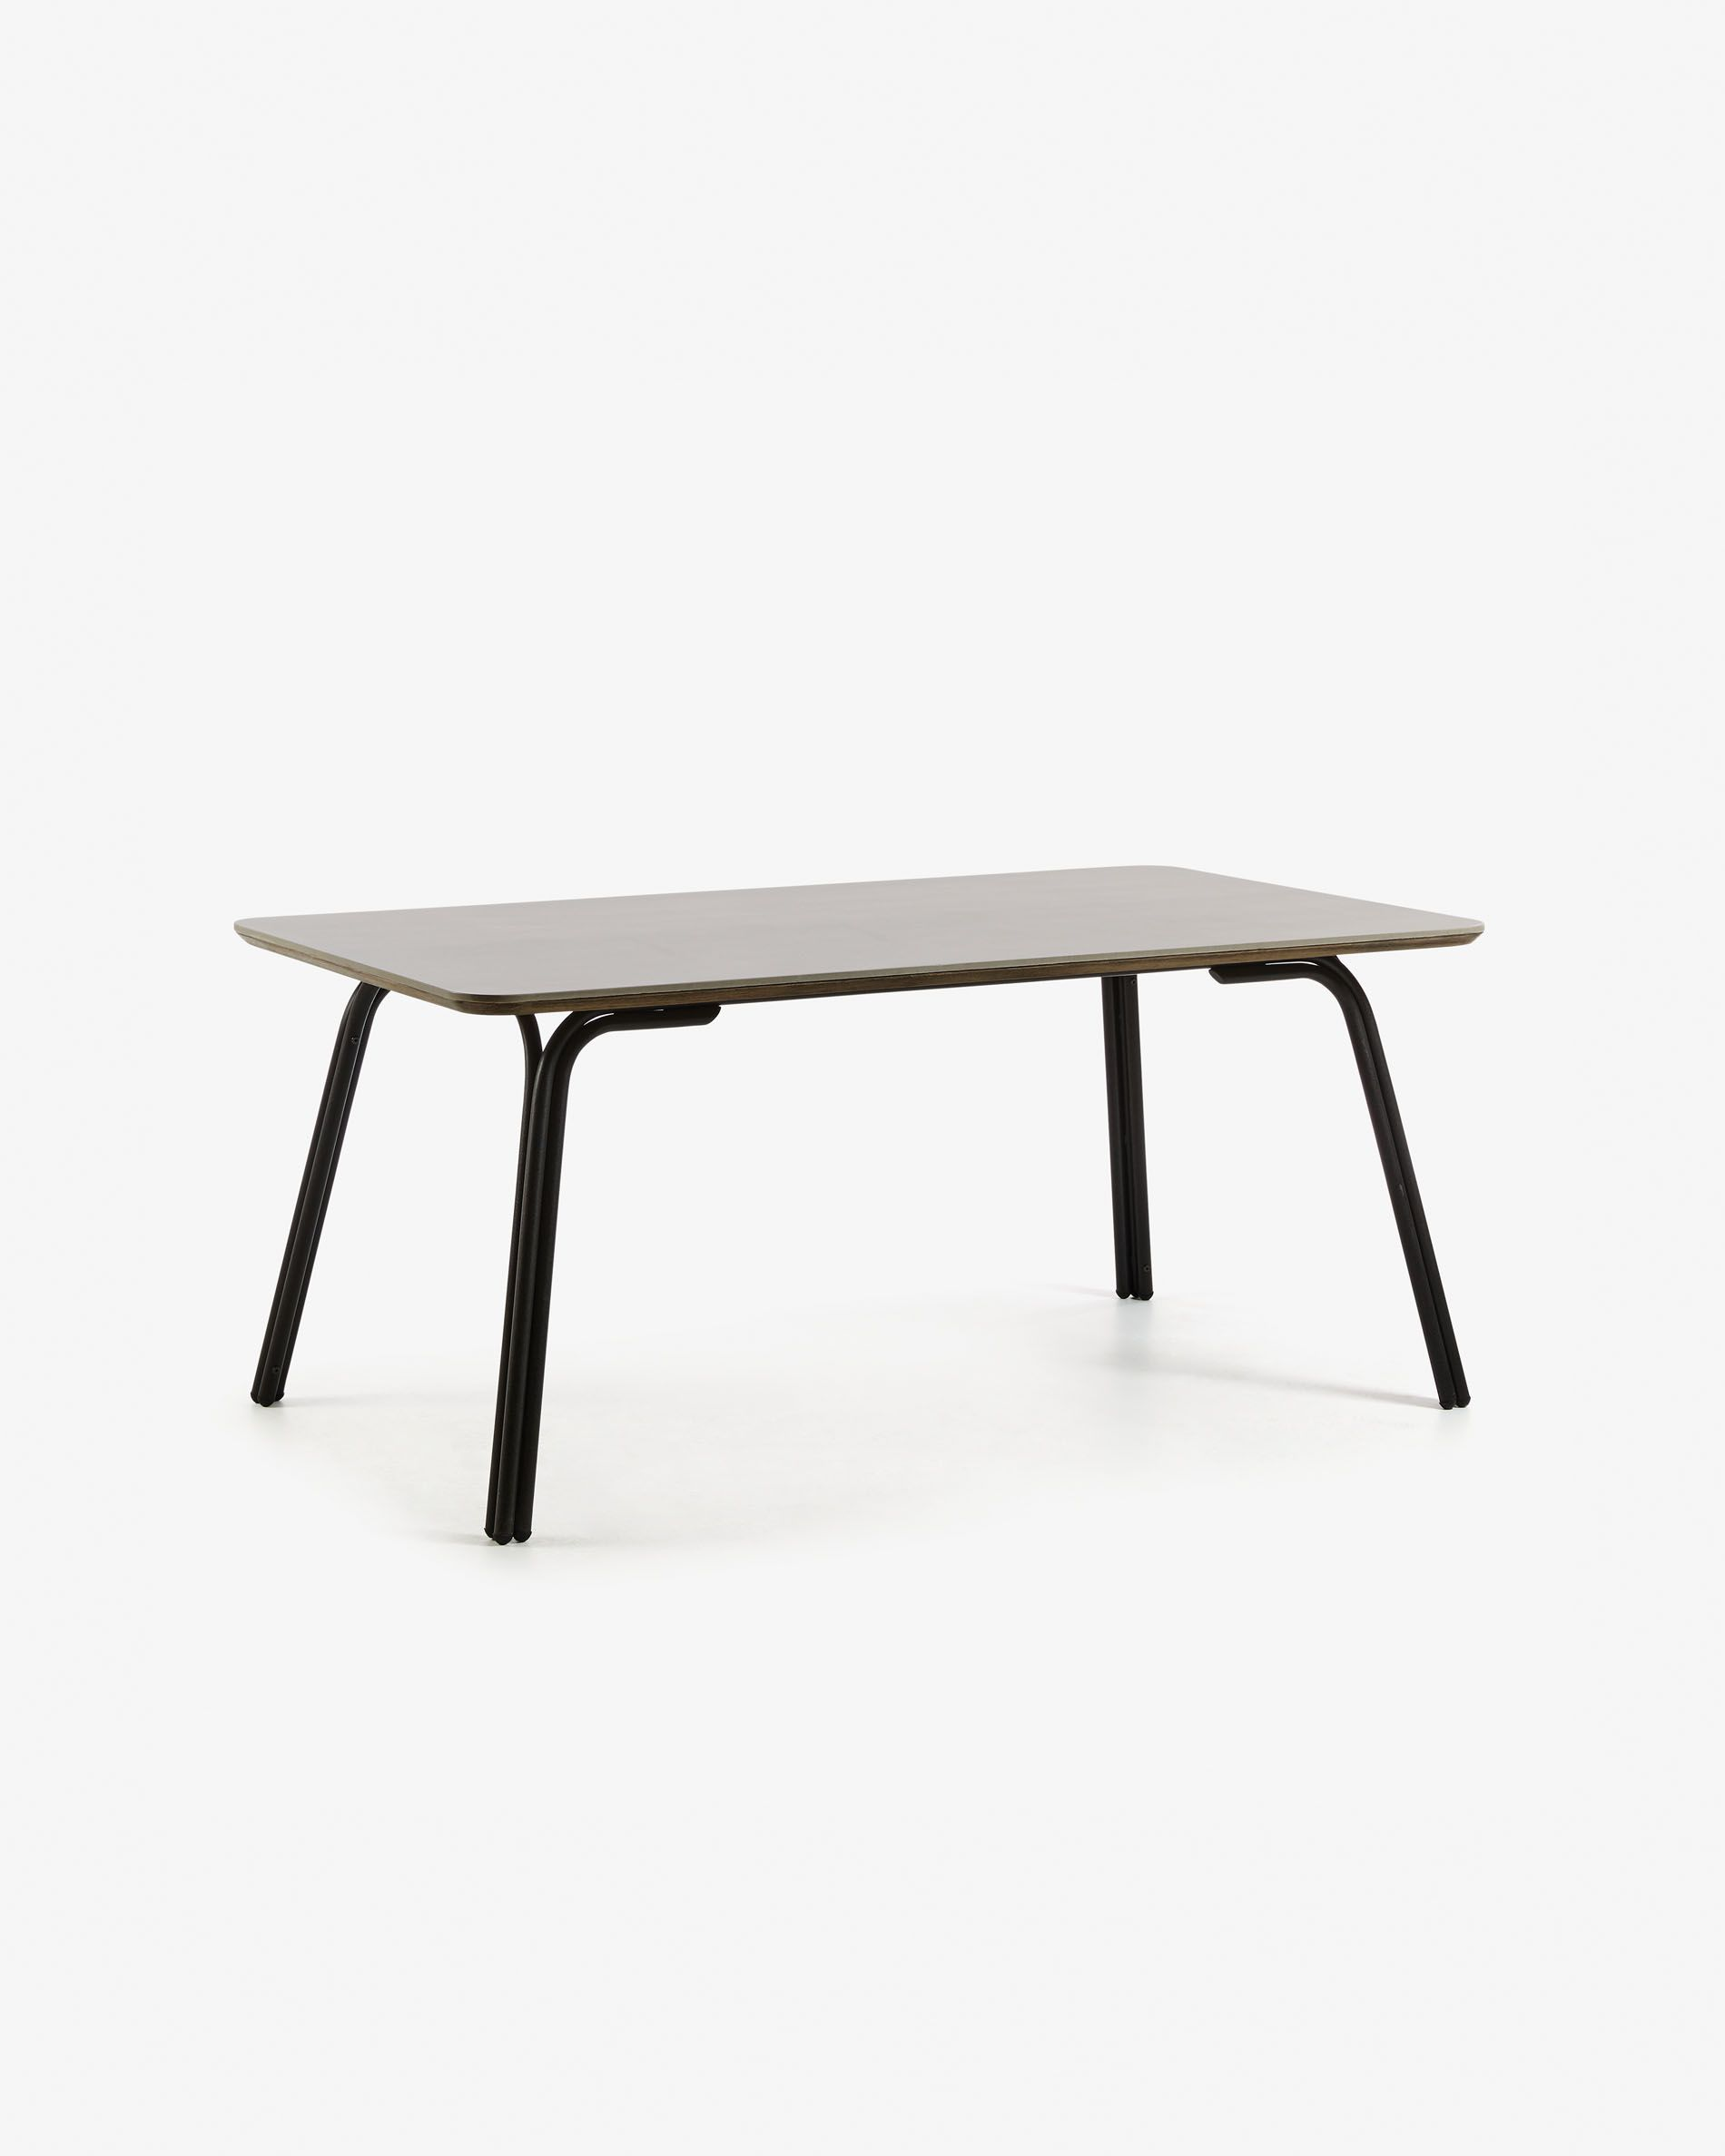 Table En Pierre Exterieur Charmant Table Newport 180 X 100 Cm Of 39 Best Of Table En Pierre Exterieur